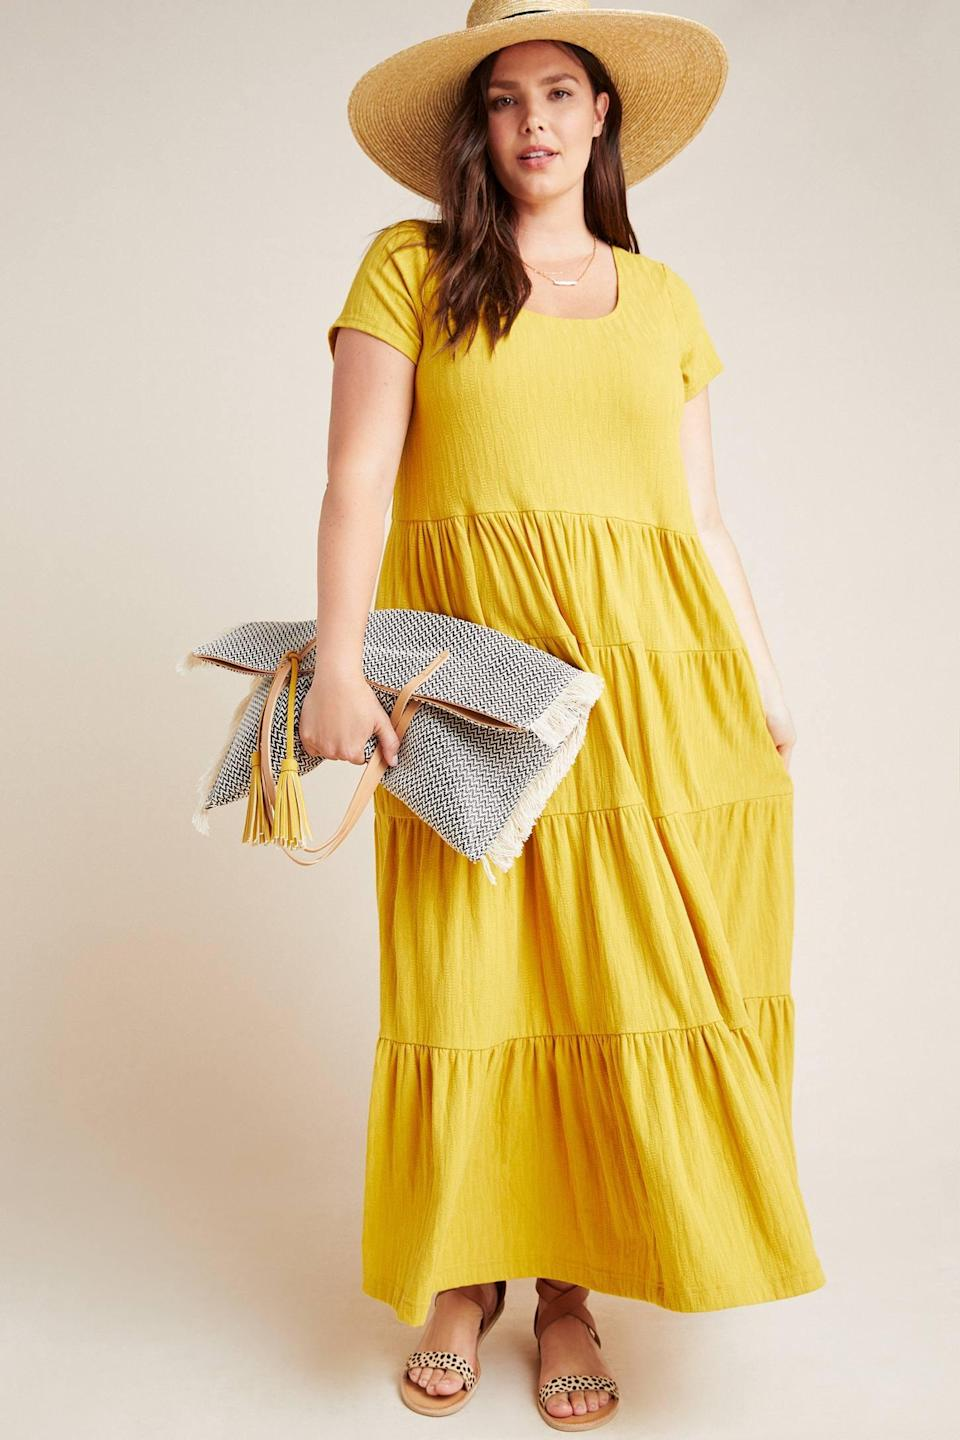 """<p>This <a href=""""https://www.popsugar.com/buy/Gillian-Tiered-Maxi-Dress-546576?p_name=Gillian%20Tiered%20Maxi%20Dress&retailer=anthropologie.com&pid=546576&price=128&evar1=travel%3Aus&evar9=47260997&evar98=https%3A%2F%2Fwww.popsugar.com%2Ftravel%2Fphoto-gallery%2F47260997%2Fimage%2F47261154%2FGillian-Tiered-Maxi-Dress&list1=shopping%2Ctravel%2Cdresses%2Cspring%20fashion&prop13=api&pdata=1"""" class=""""link rapid-noclick-resp"""" rel=""""nofollow noopener"""" target=""""_blank"""" data-ylk=""""slk:Gillian Tiered Maxi Dress"""">Gillian Tiered Maxi Dress</a> ($128) comes in four colors.</p>"""